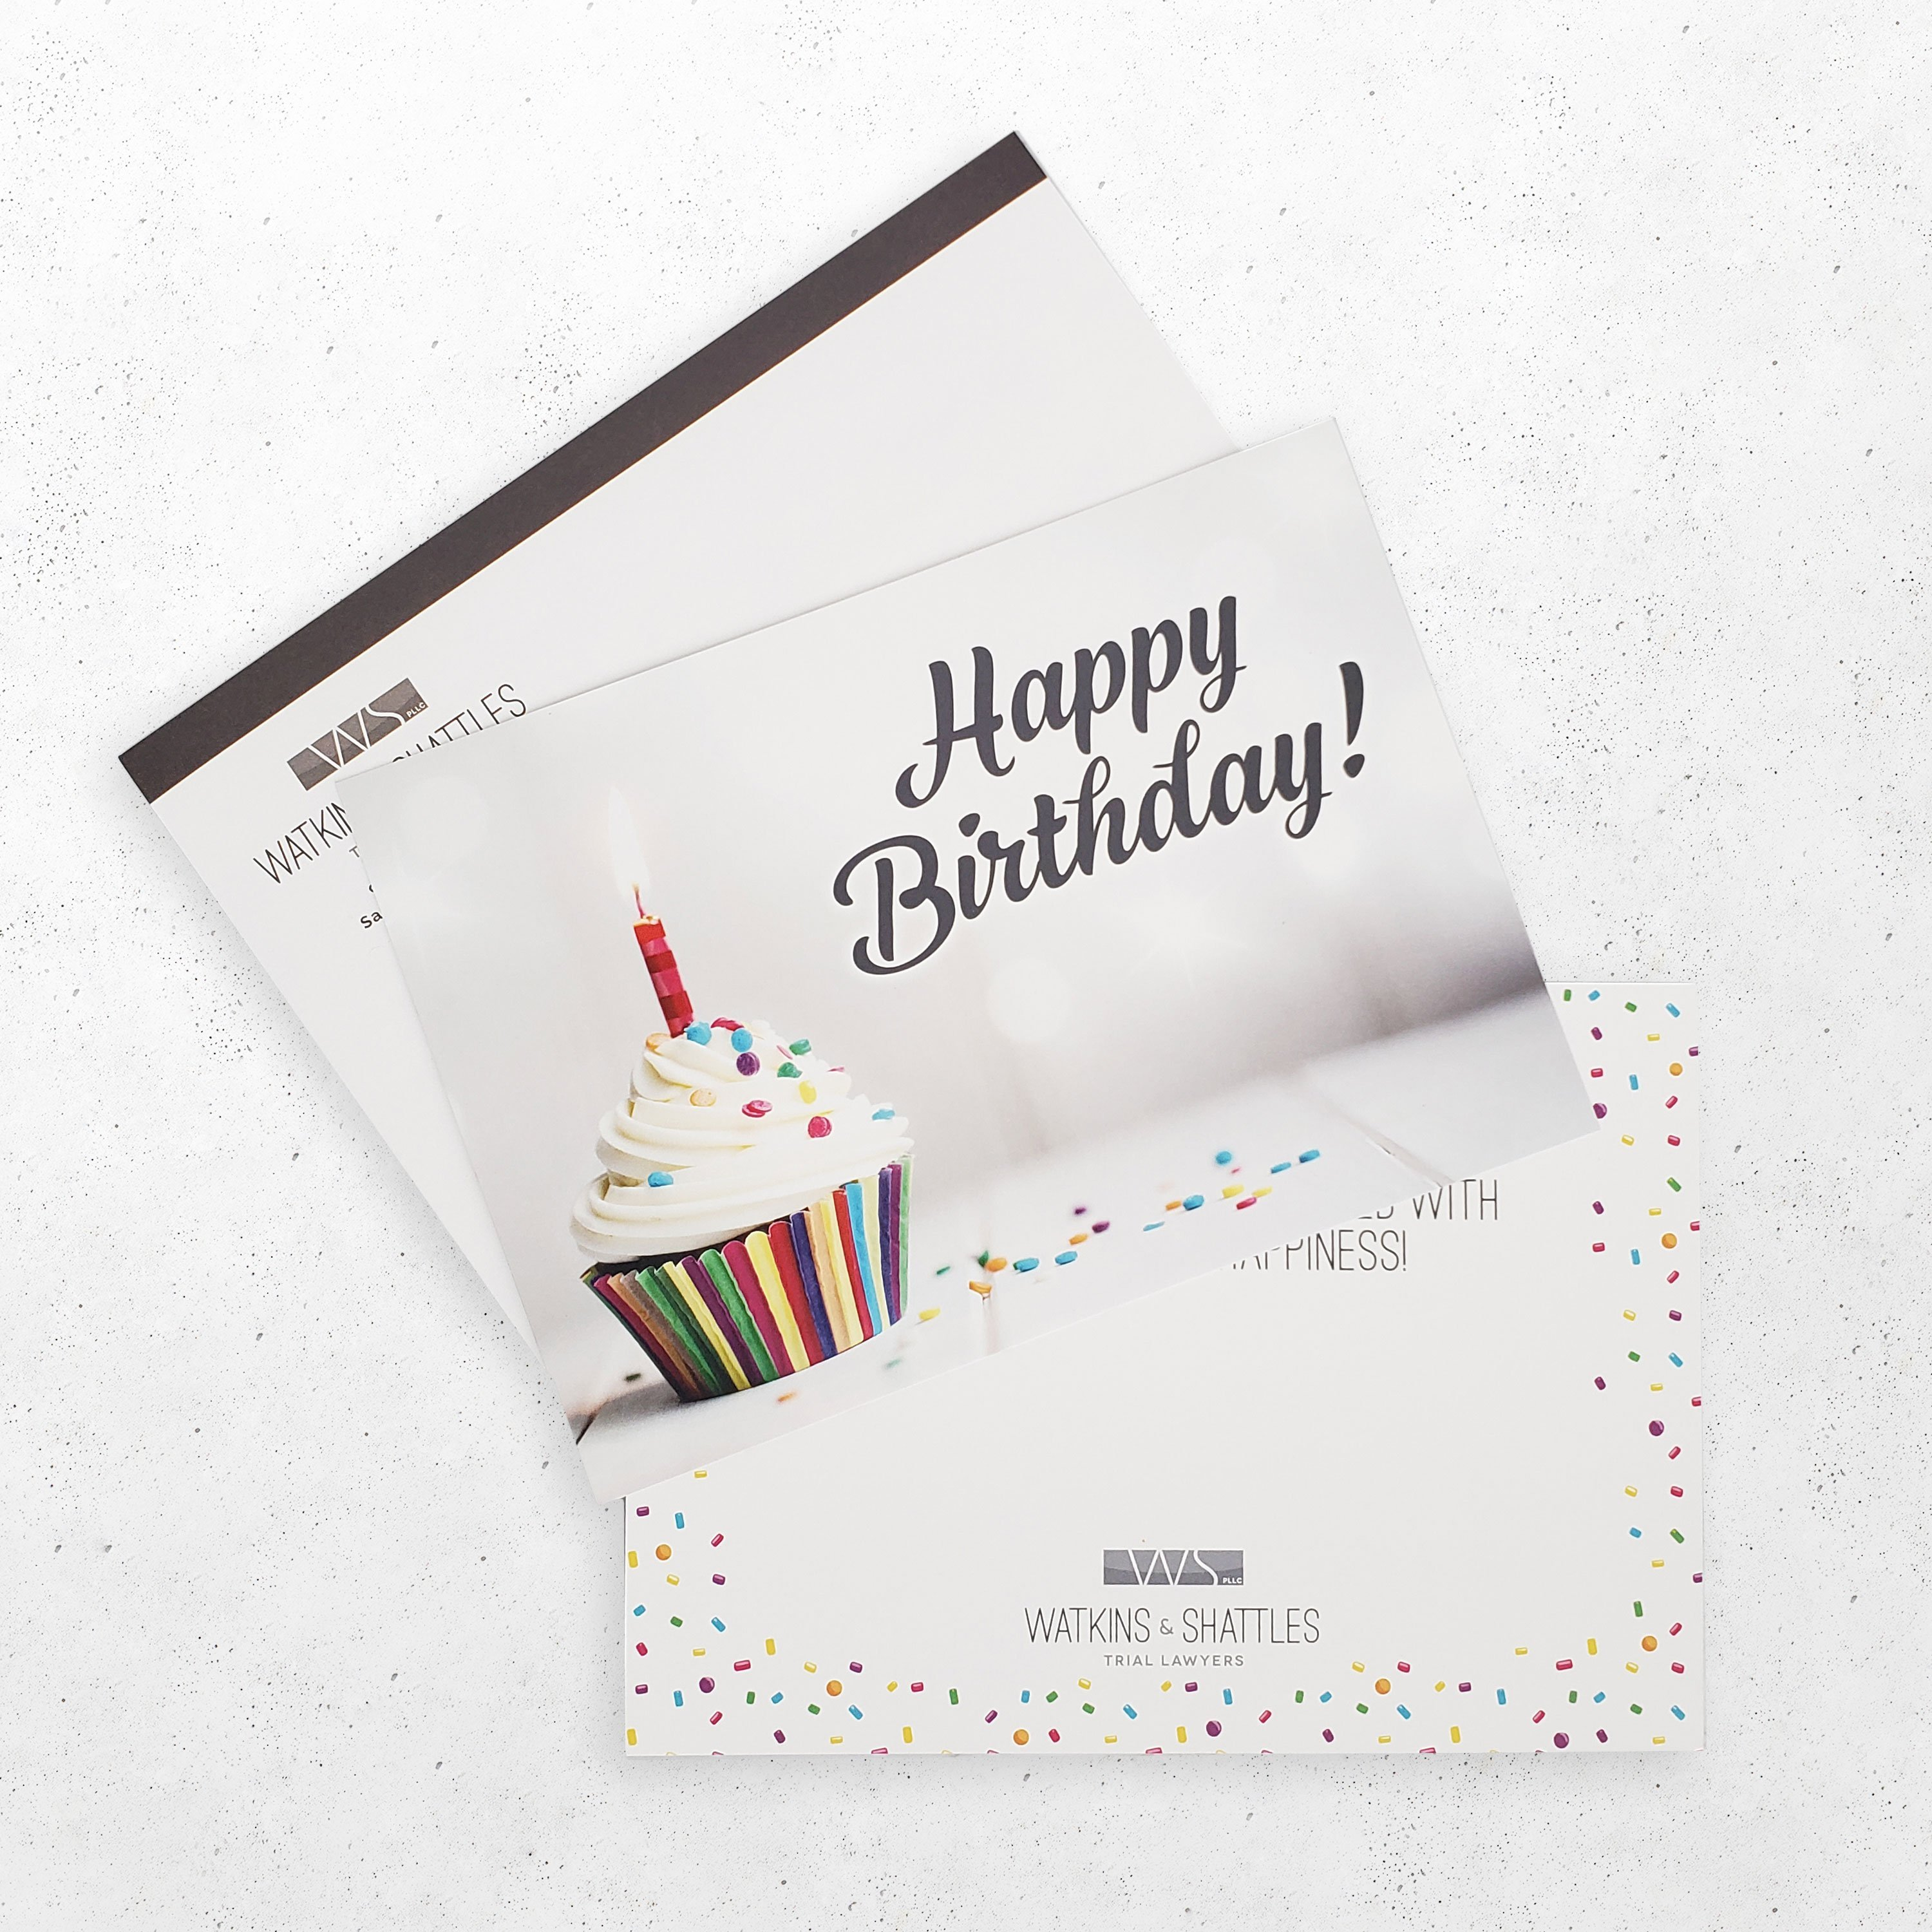 Watkins & Shattles Greeting Card